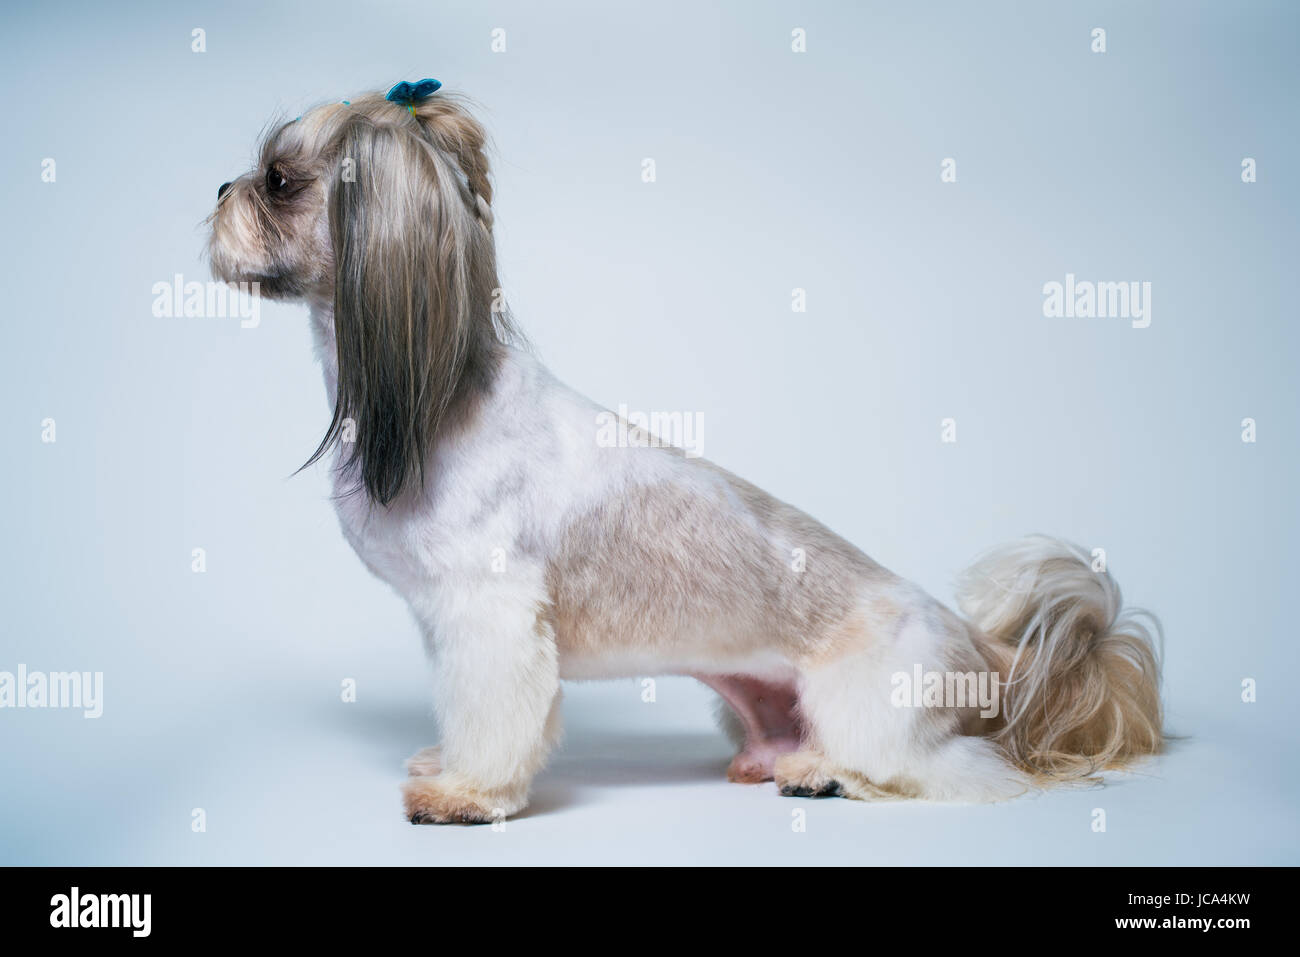 Shih Tzu Dog With Short Hair After Grooming Profile View On Bright